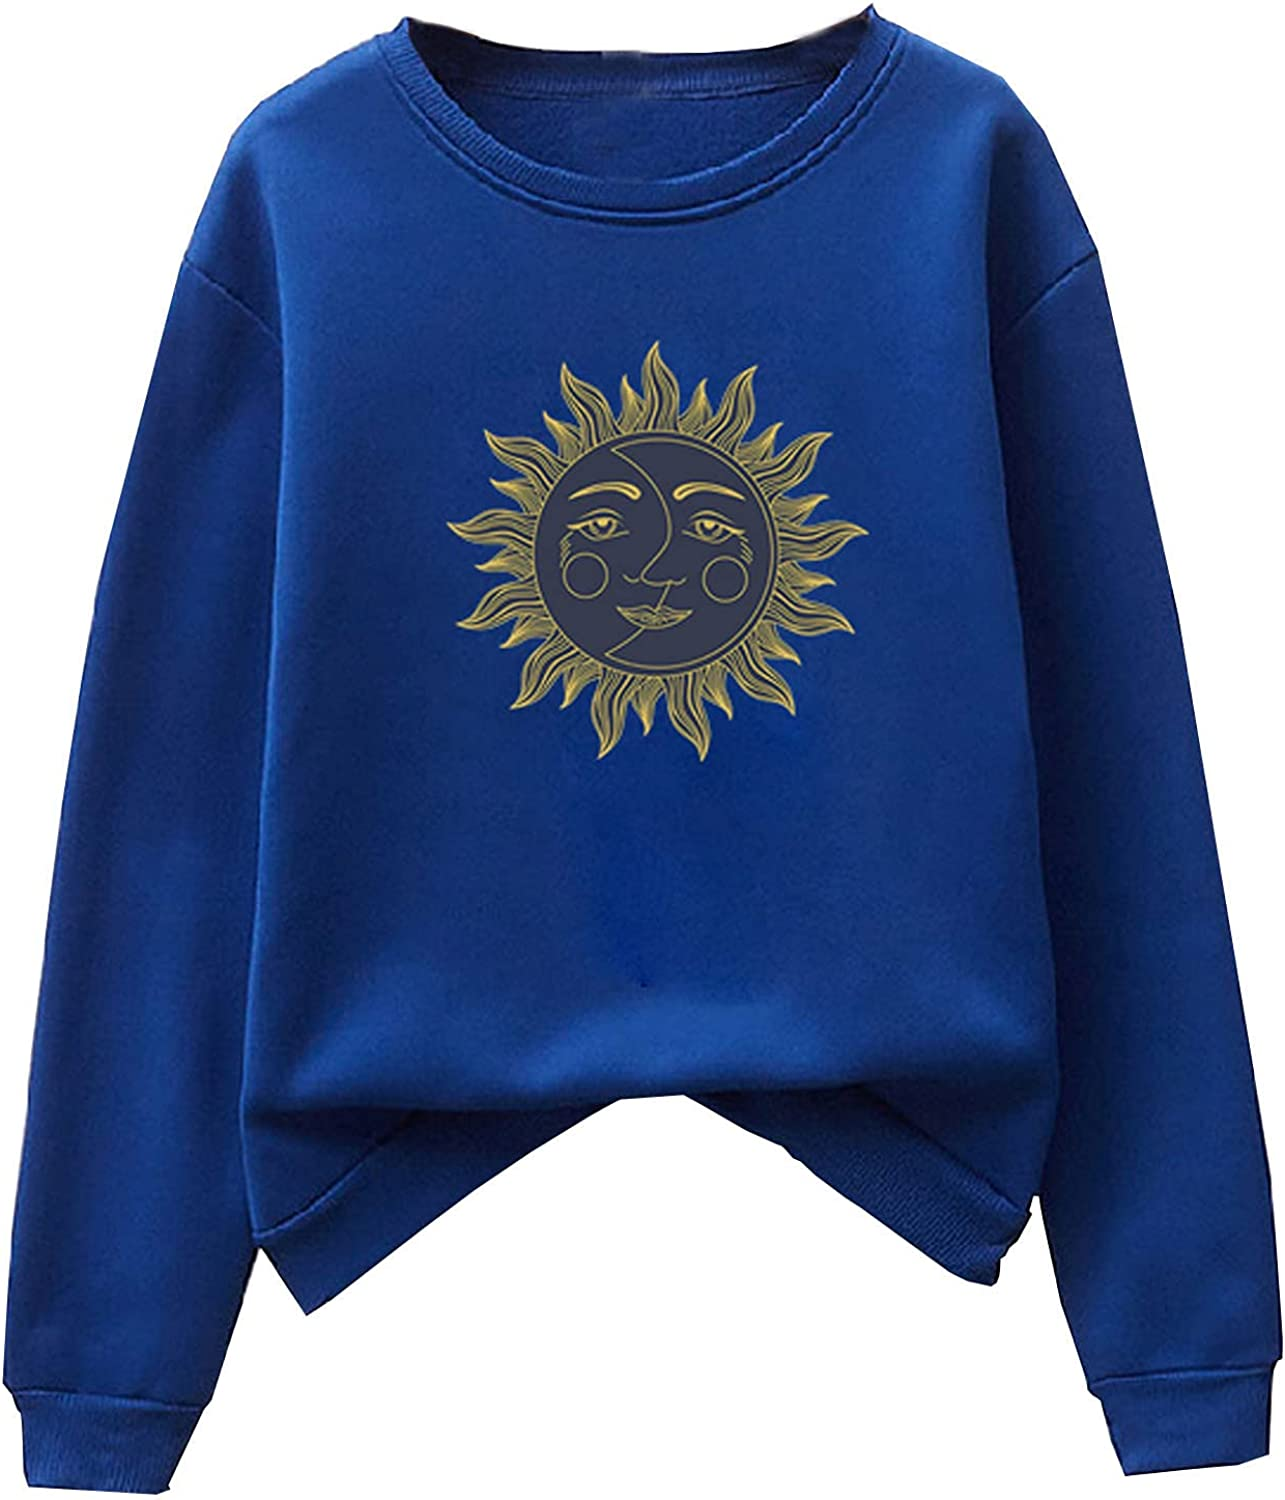 Women's Casual Solid Long Sleeve Tee Shirts Sun Printed Pullover Tops Round Neck Graphic Sweatshirt